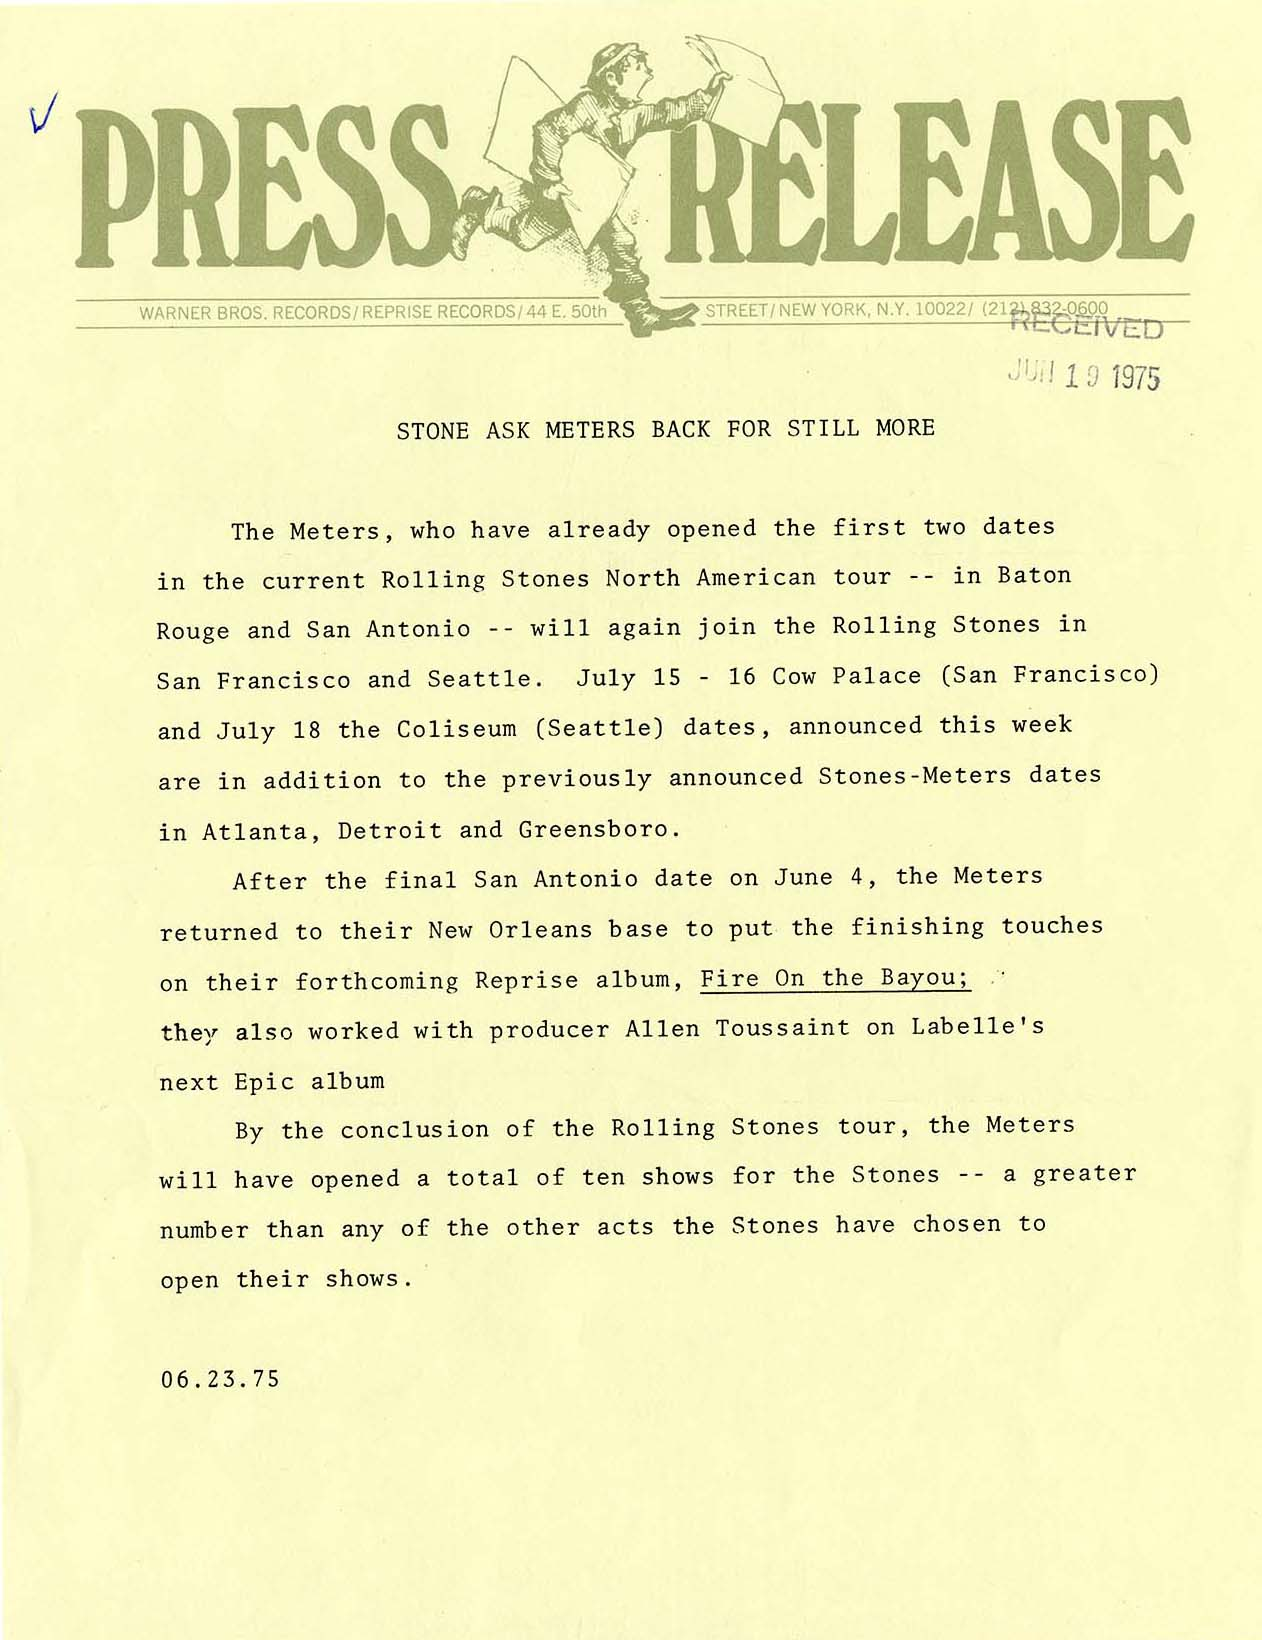 Press release on the Meters and the Rolling Stones